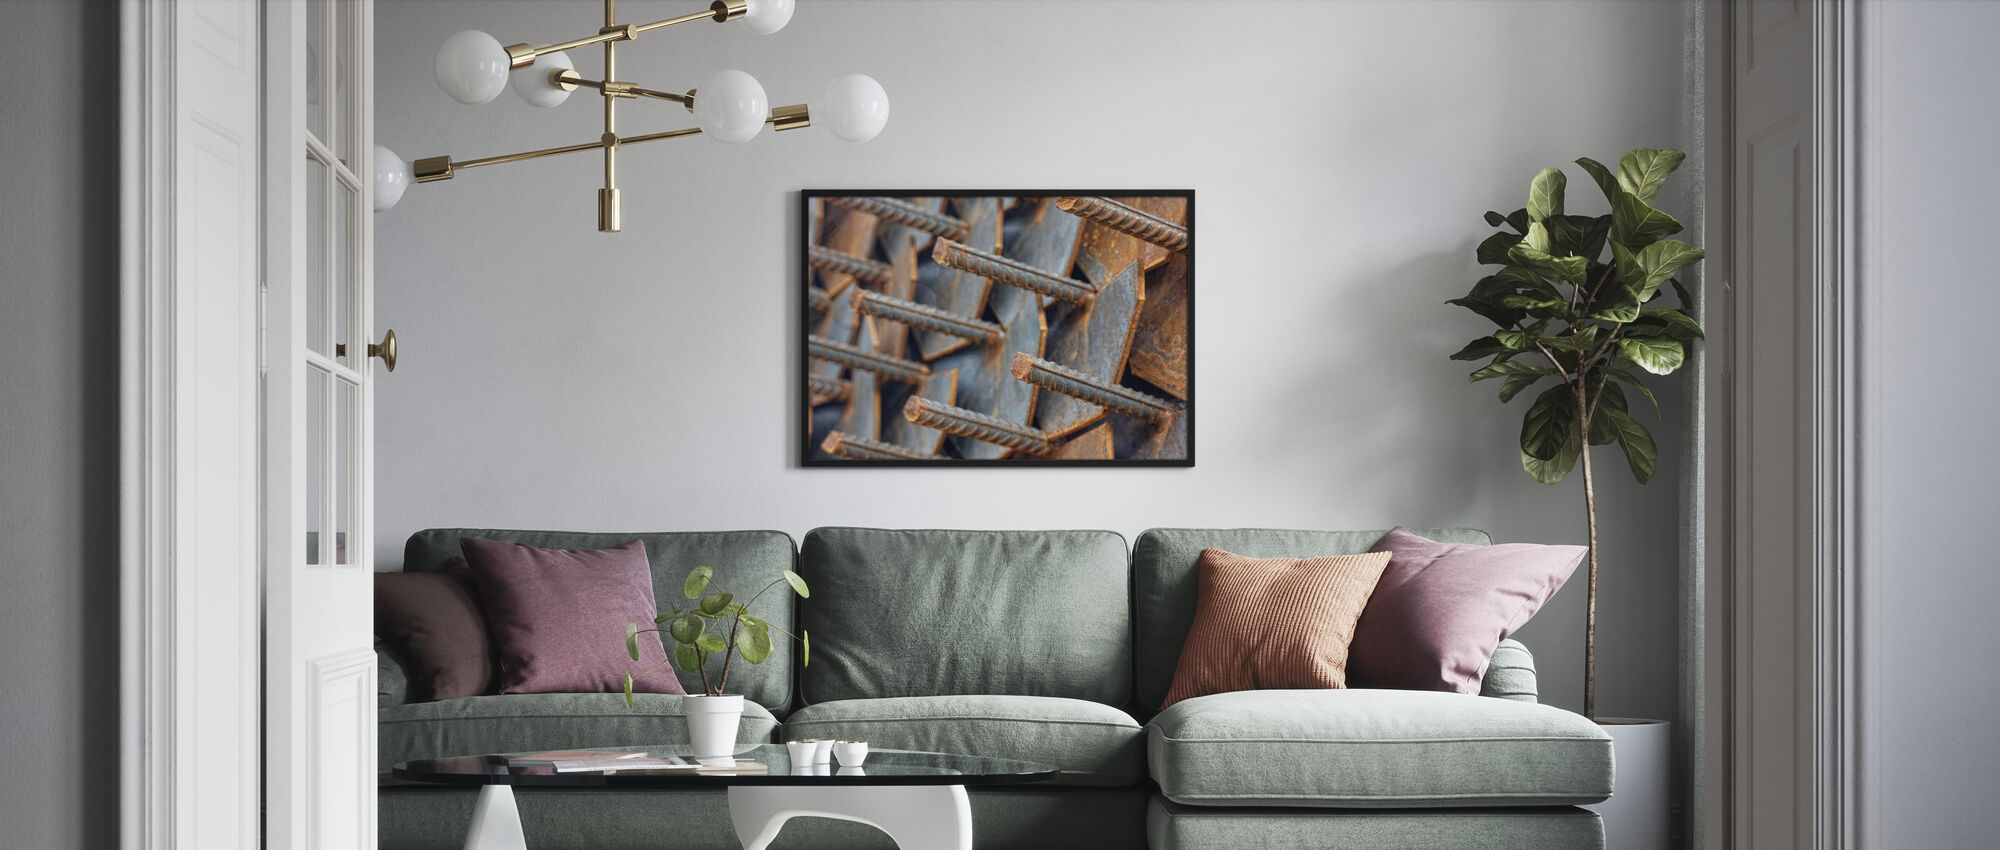 Reinforcement Rods - Framed print - Living Room